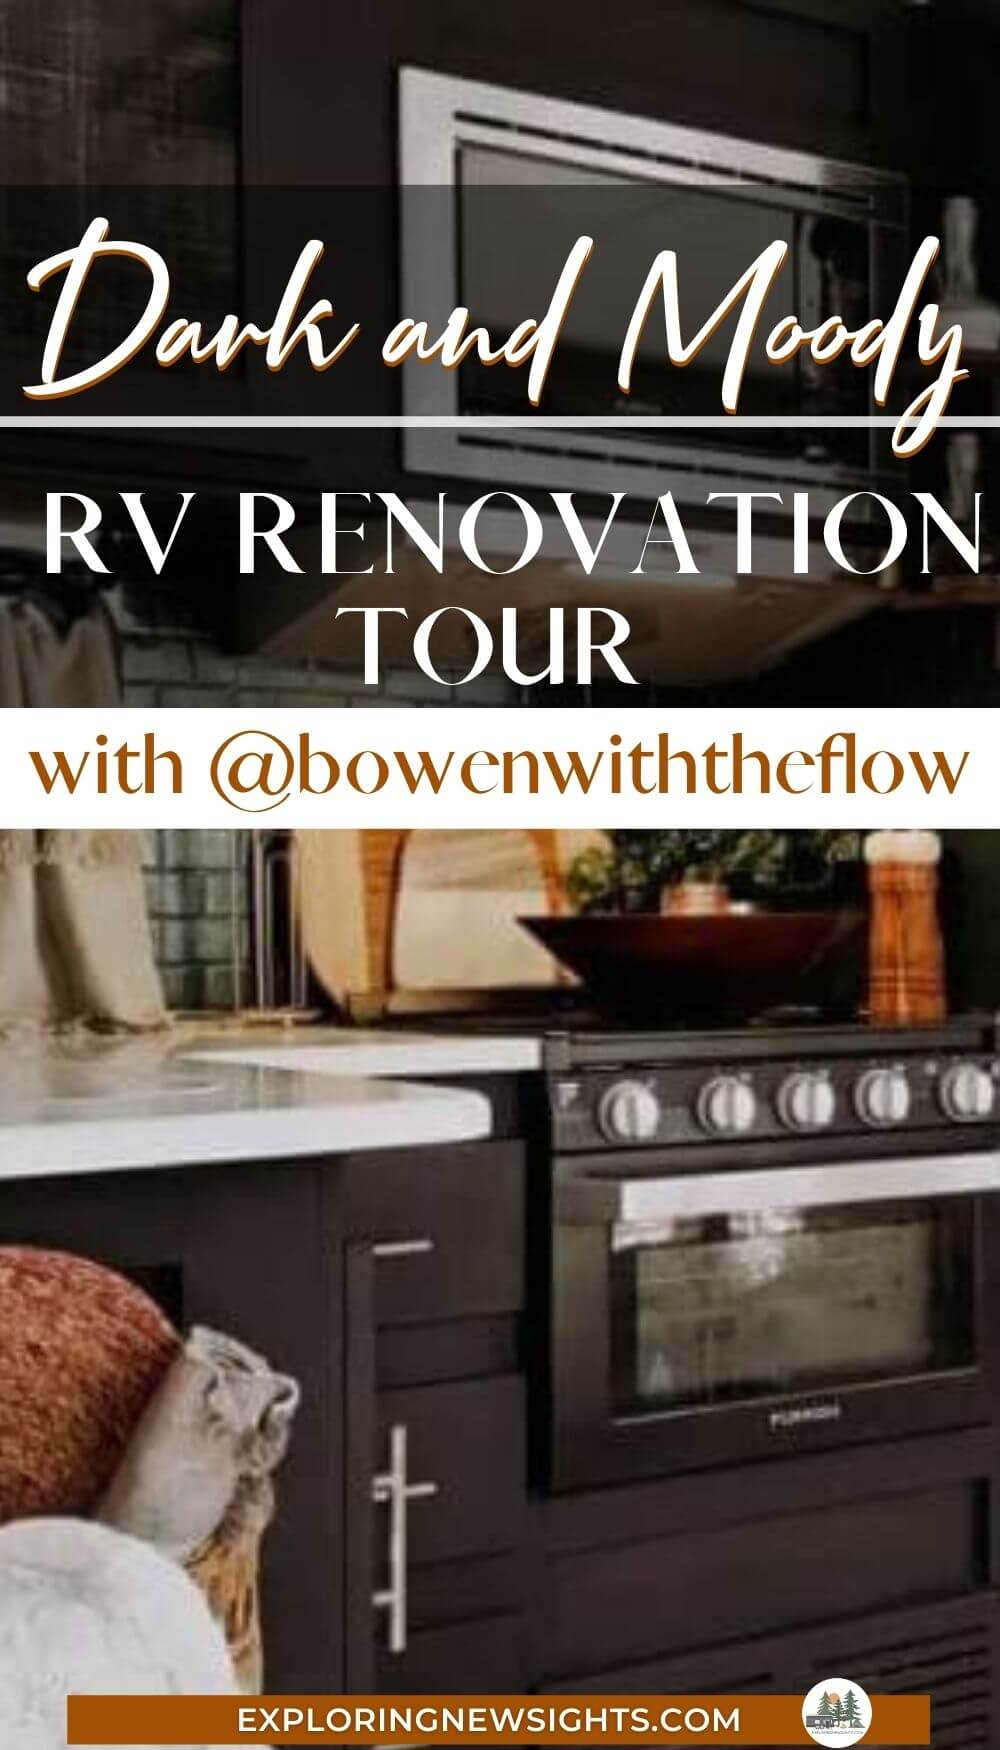 Dark and moody RV renovation tour